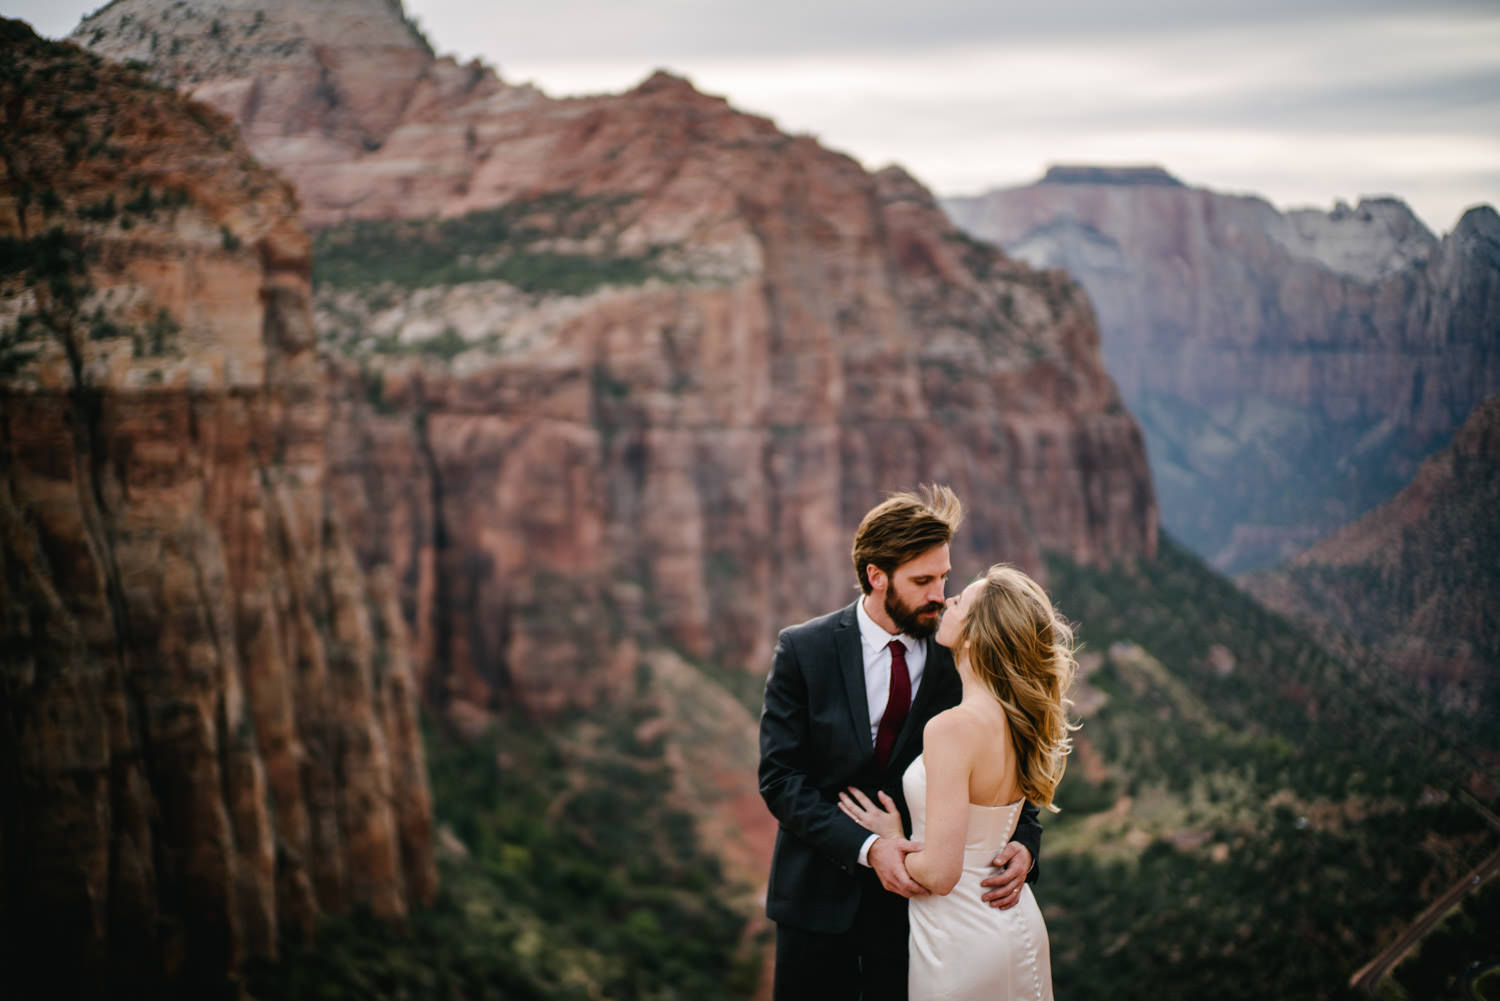 zionnationalpark_utah_destinationweddingphotographer_austendiamondphotography-2